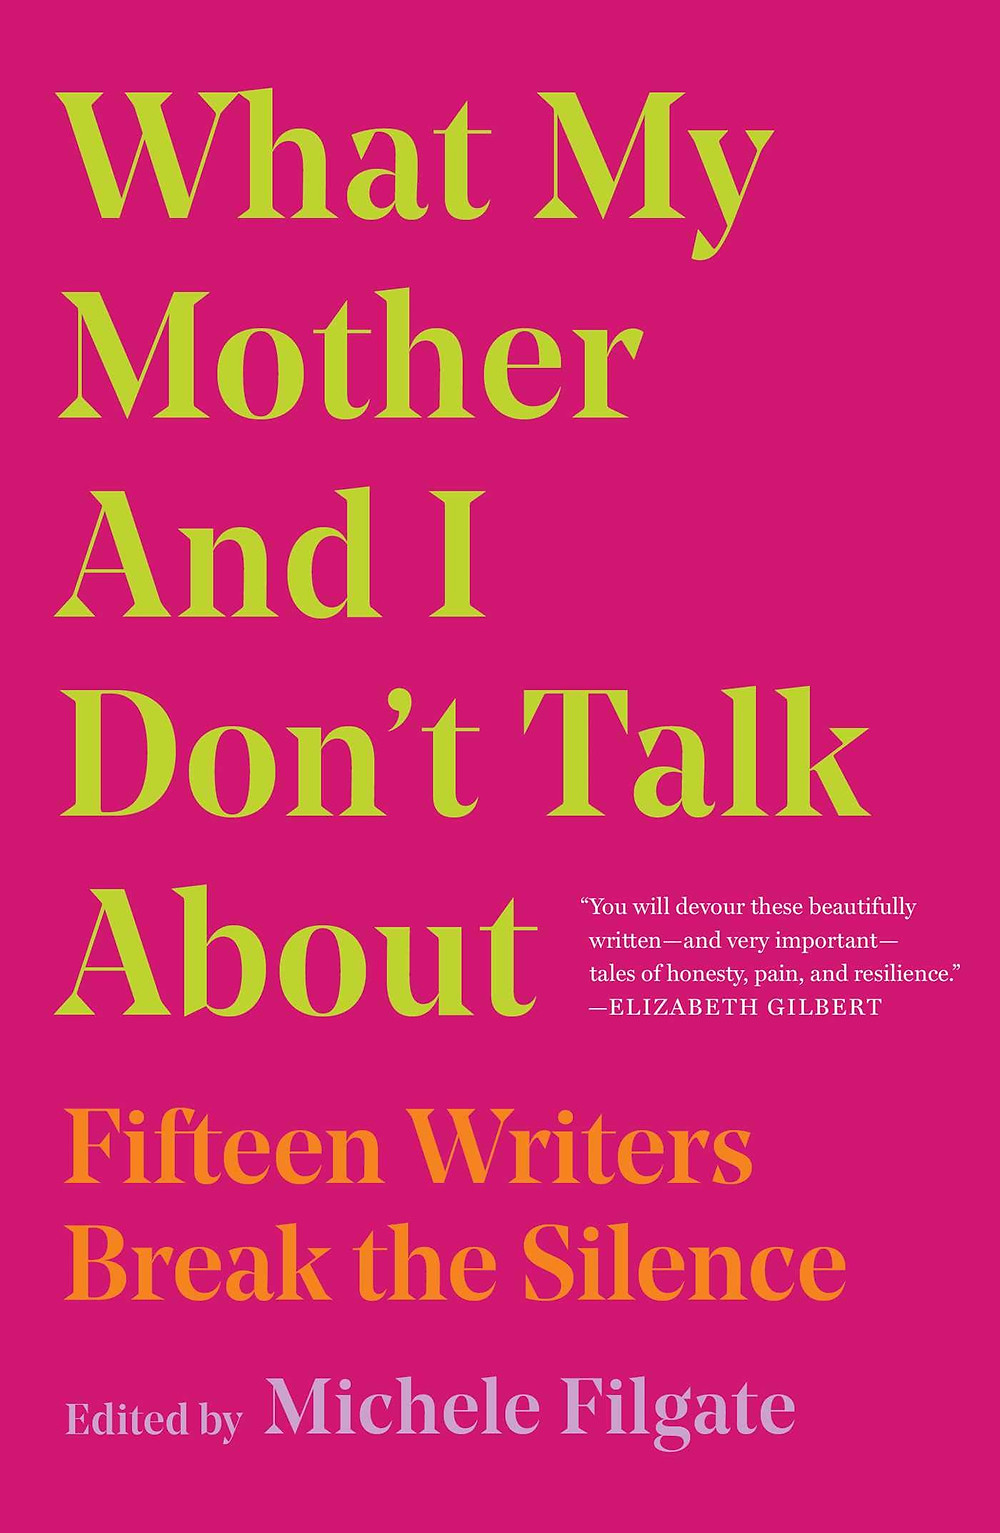 What My Mother and I Don't Talk About edited by Michele Filgate